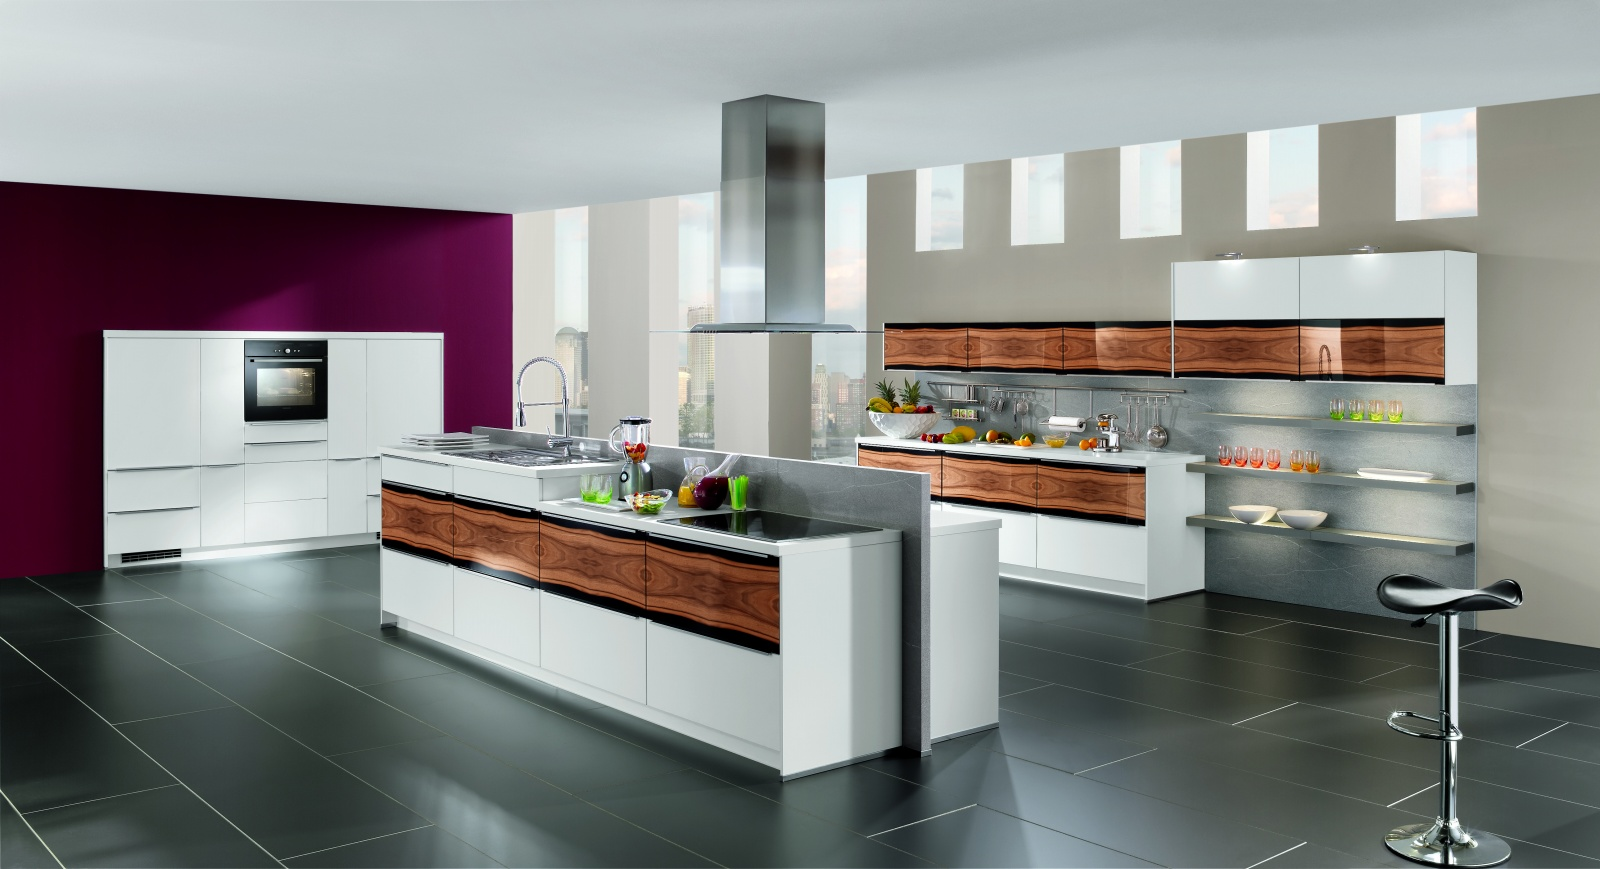 10 light wood beautiful contemporary nobilia kitchen designs Kitchen design blogs 2014